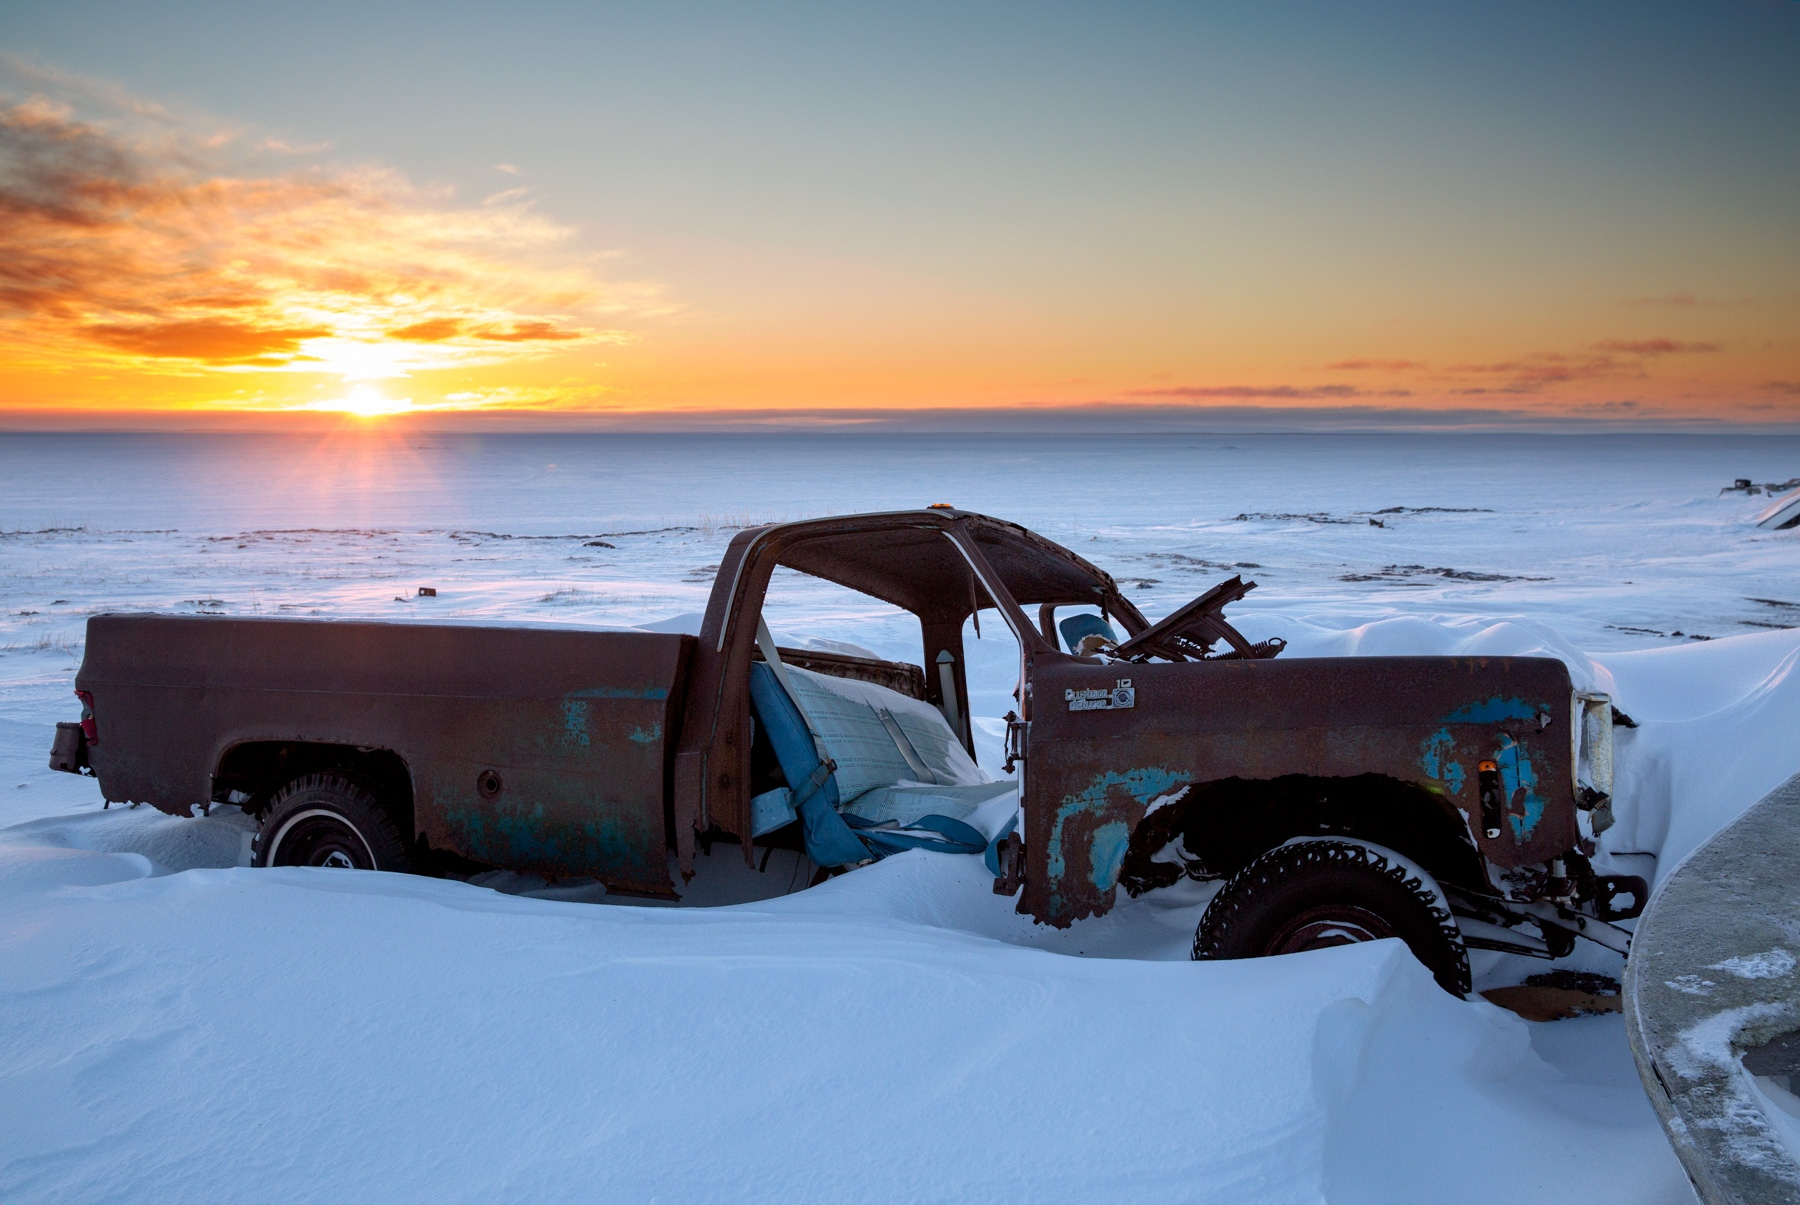 An abandoned truck in junked on the beach in Shishmaref, Alaska.